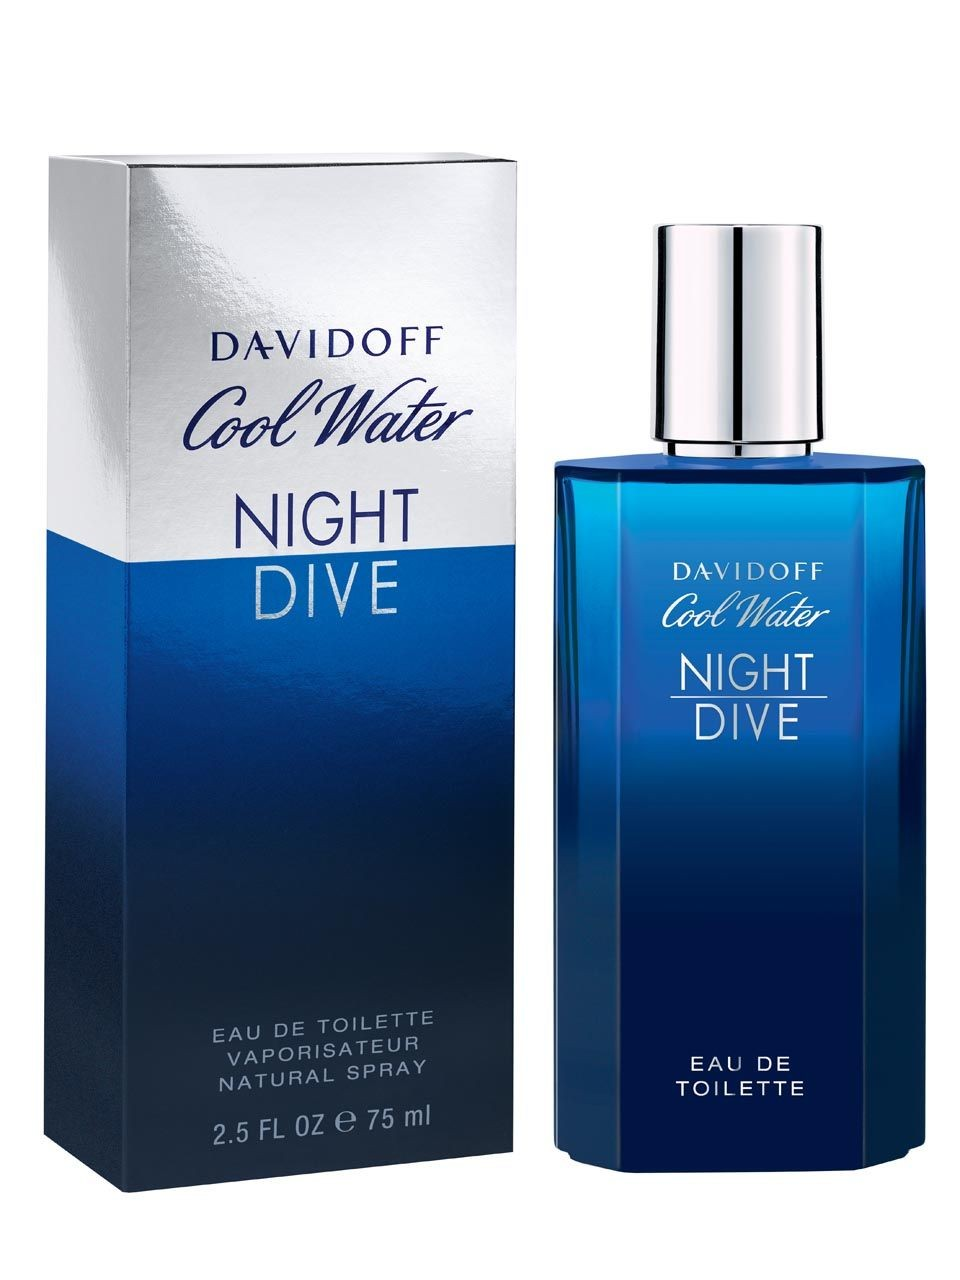 Cool water night dive davidoff cologne a new fragrance - Davidoff night dive ...